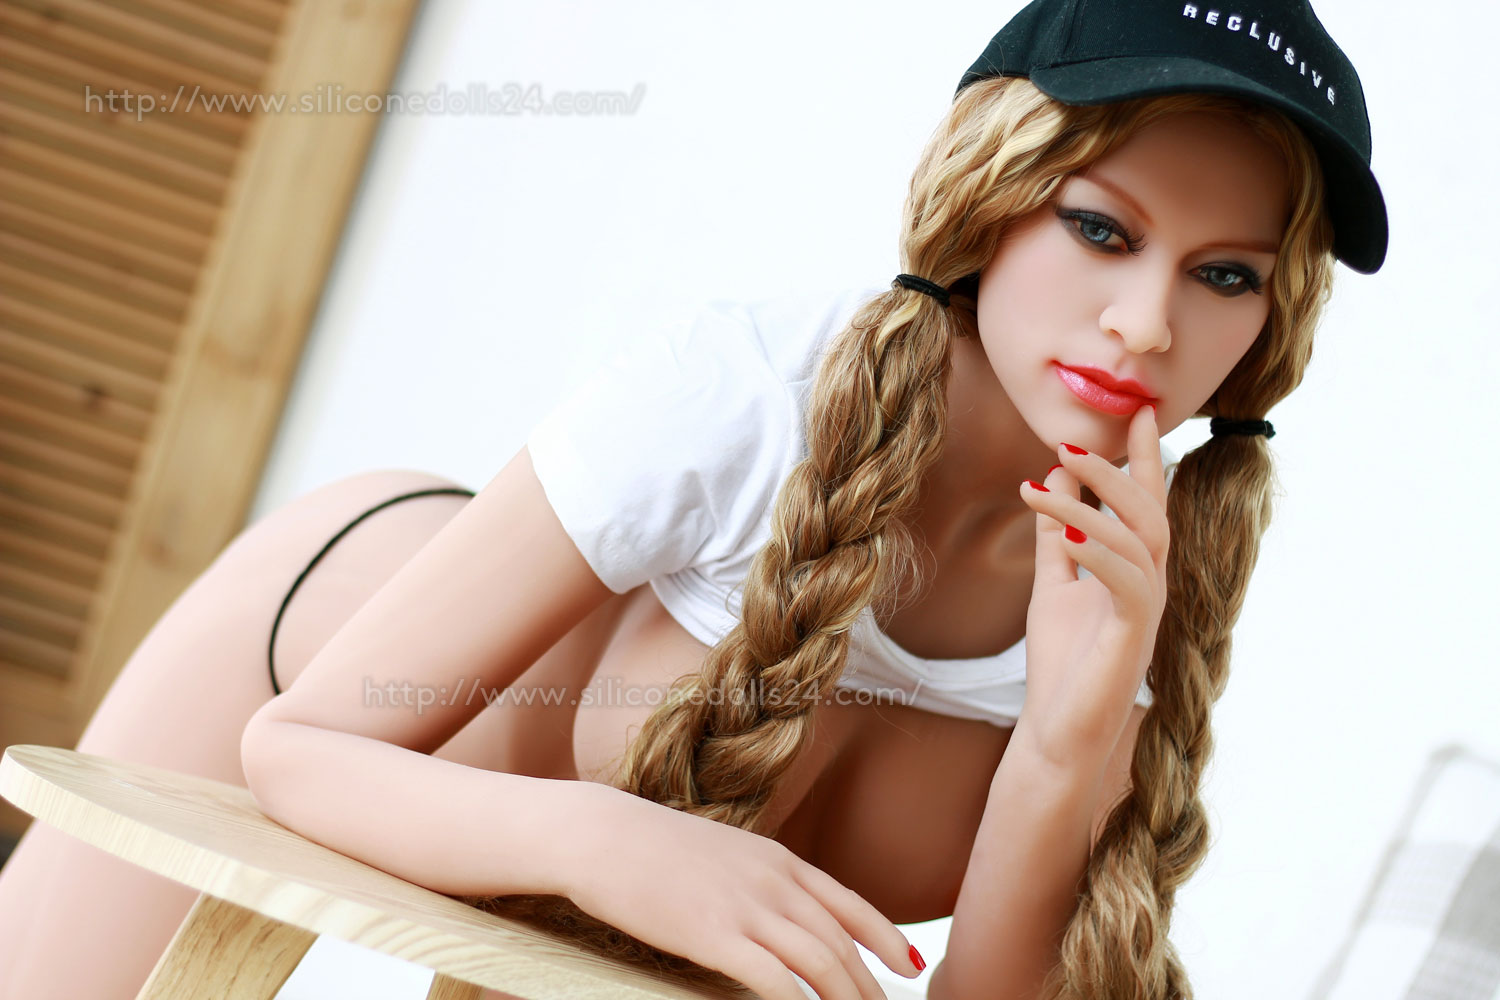 6Ye-blonde-adult-real-doll